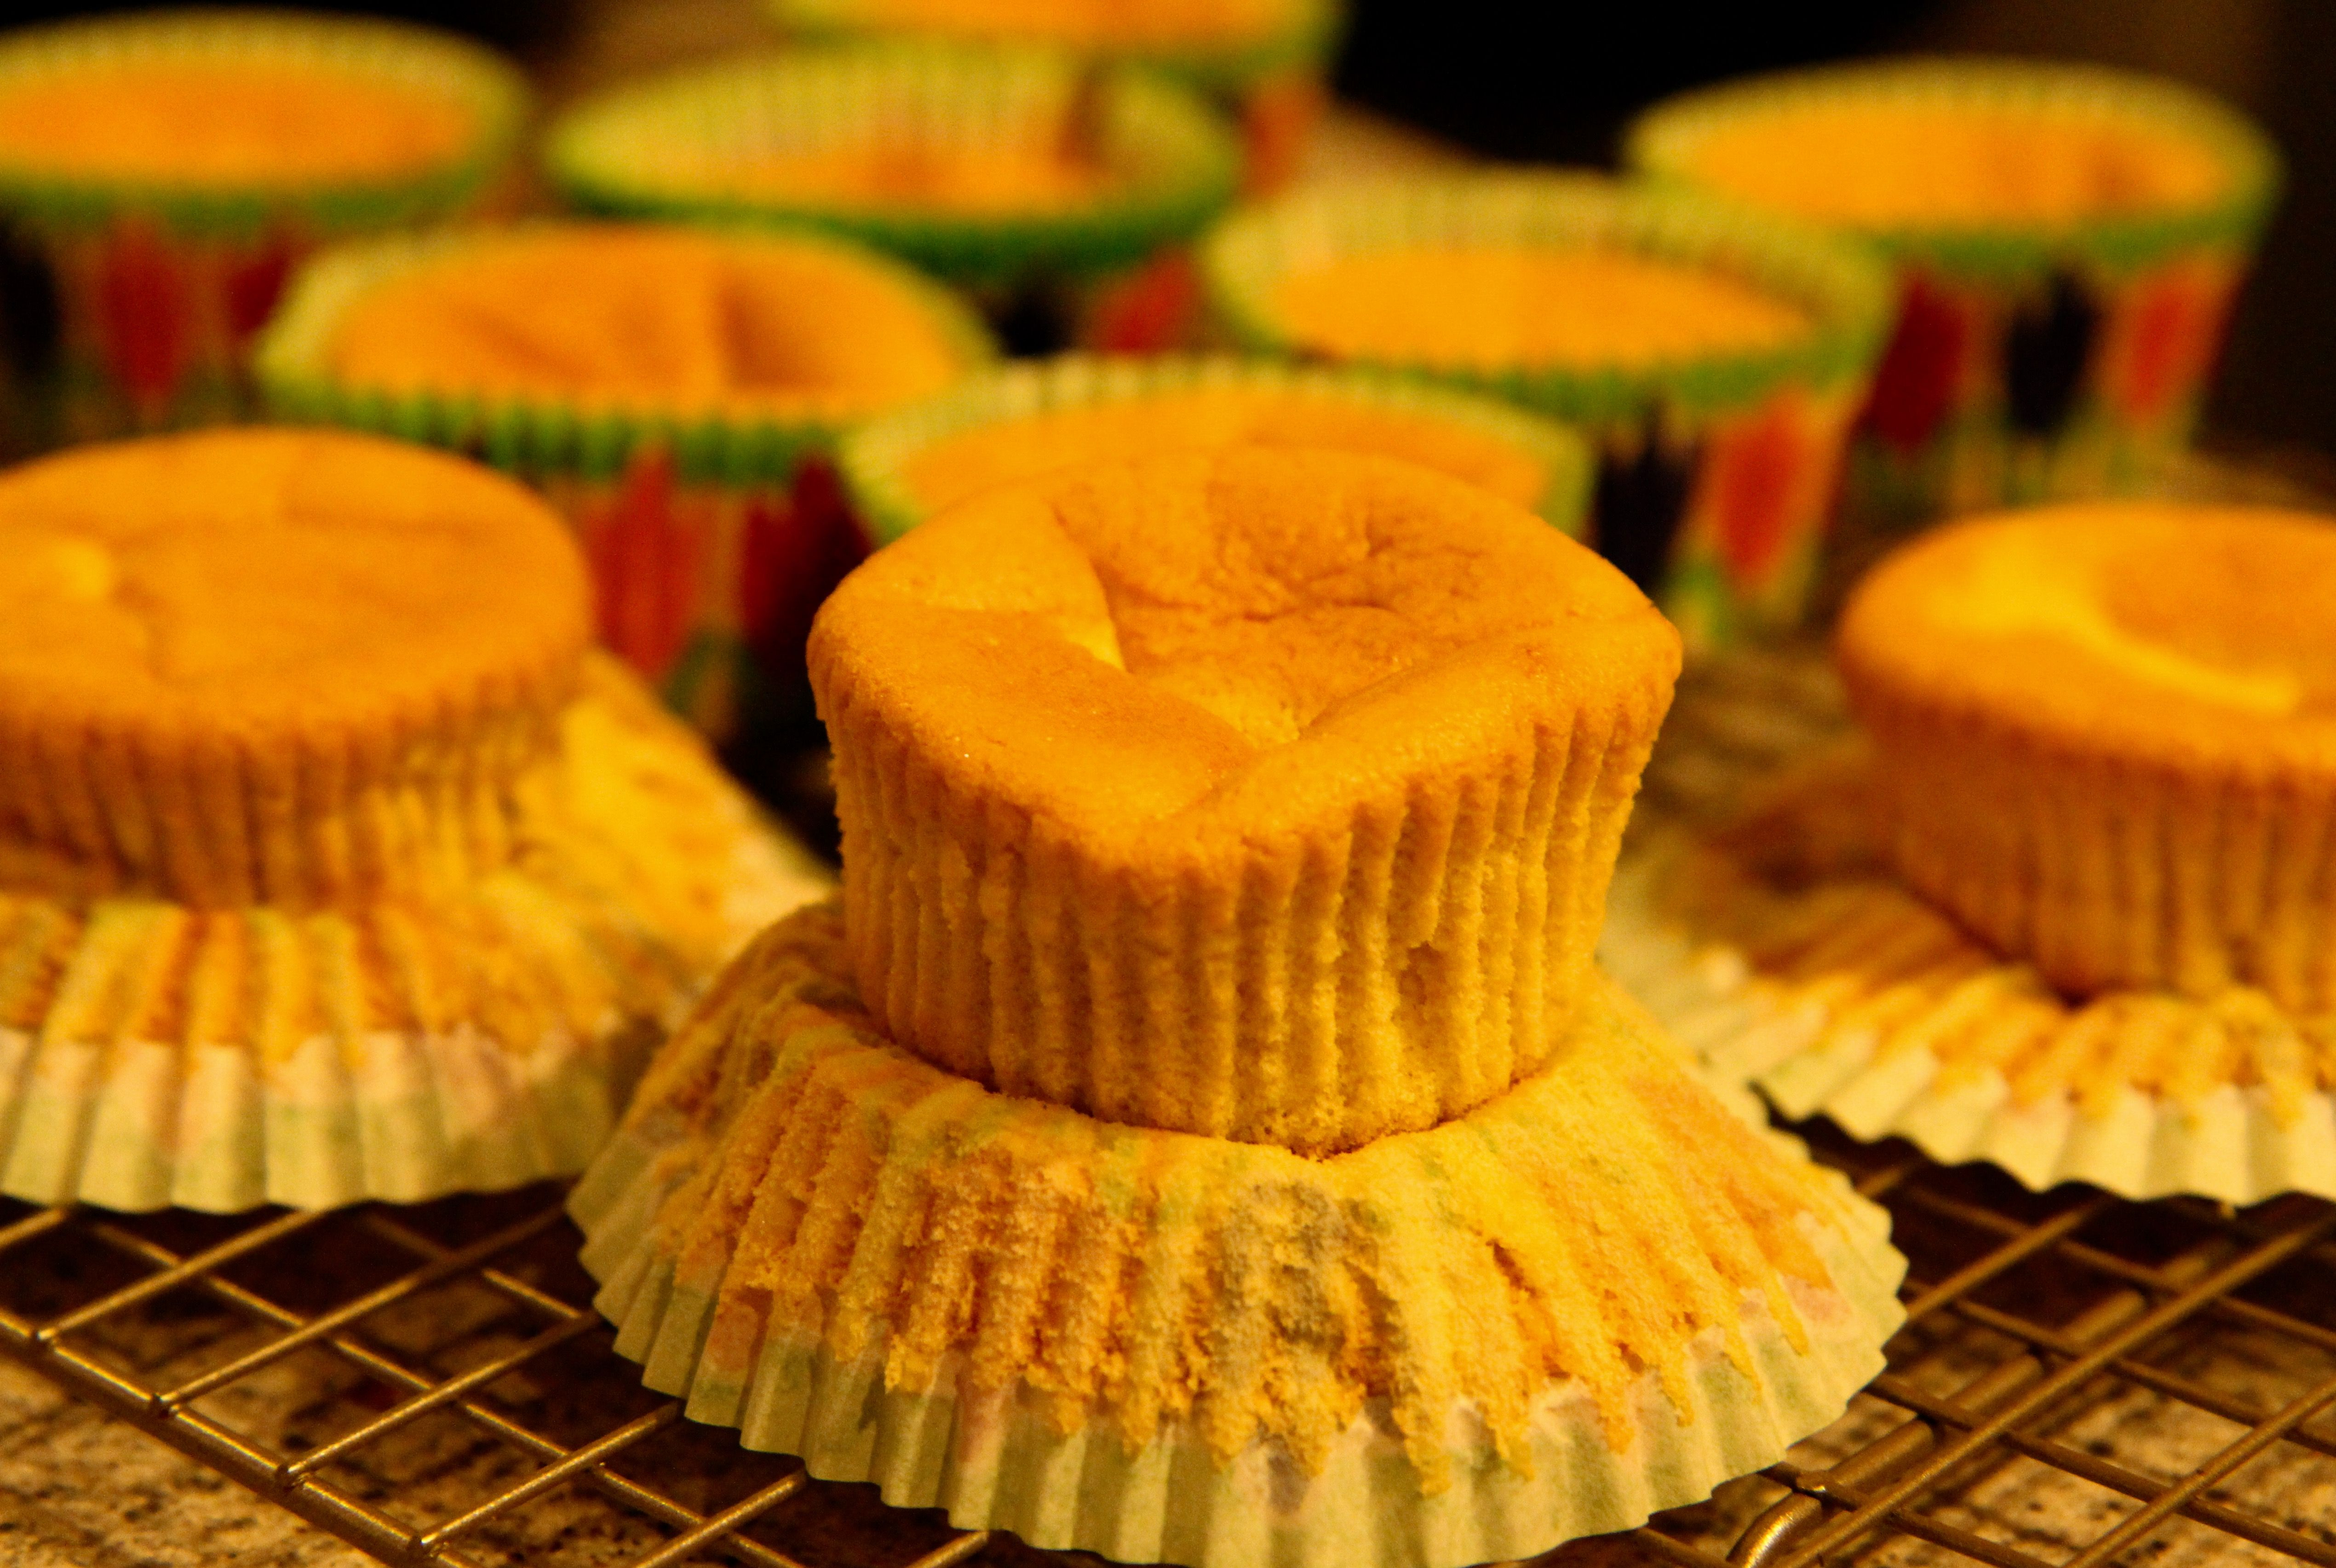 Chinese sponge cup cakes (12) 4 eggs, 1 cup cake flour, 1/4 brown sugar, 1/4 orange juice,  1 tbsp olive oil, 1 tbsp honey, lemon zests. Separate the yokes and whites, beat the whites to the foamy and fluffy stage, mix in with yokes and the rest. Bake in 350F (325F my oven) degrees for 15 minutes.